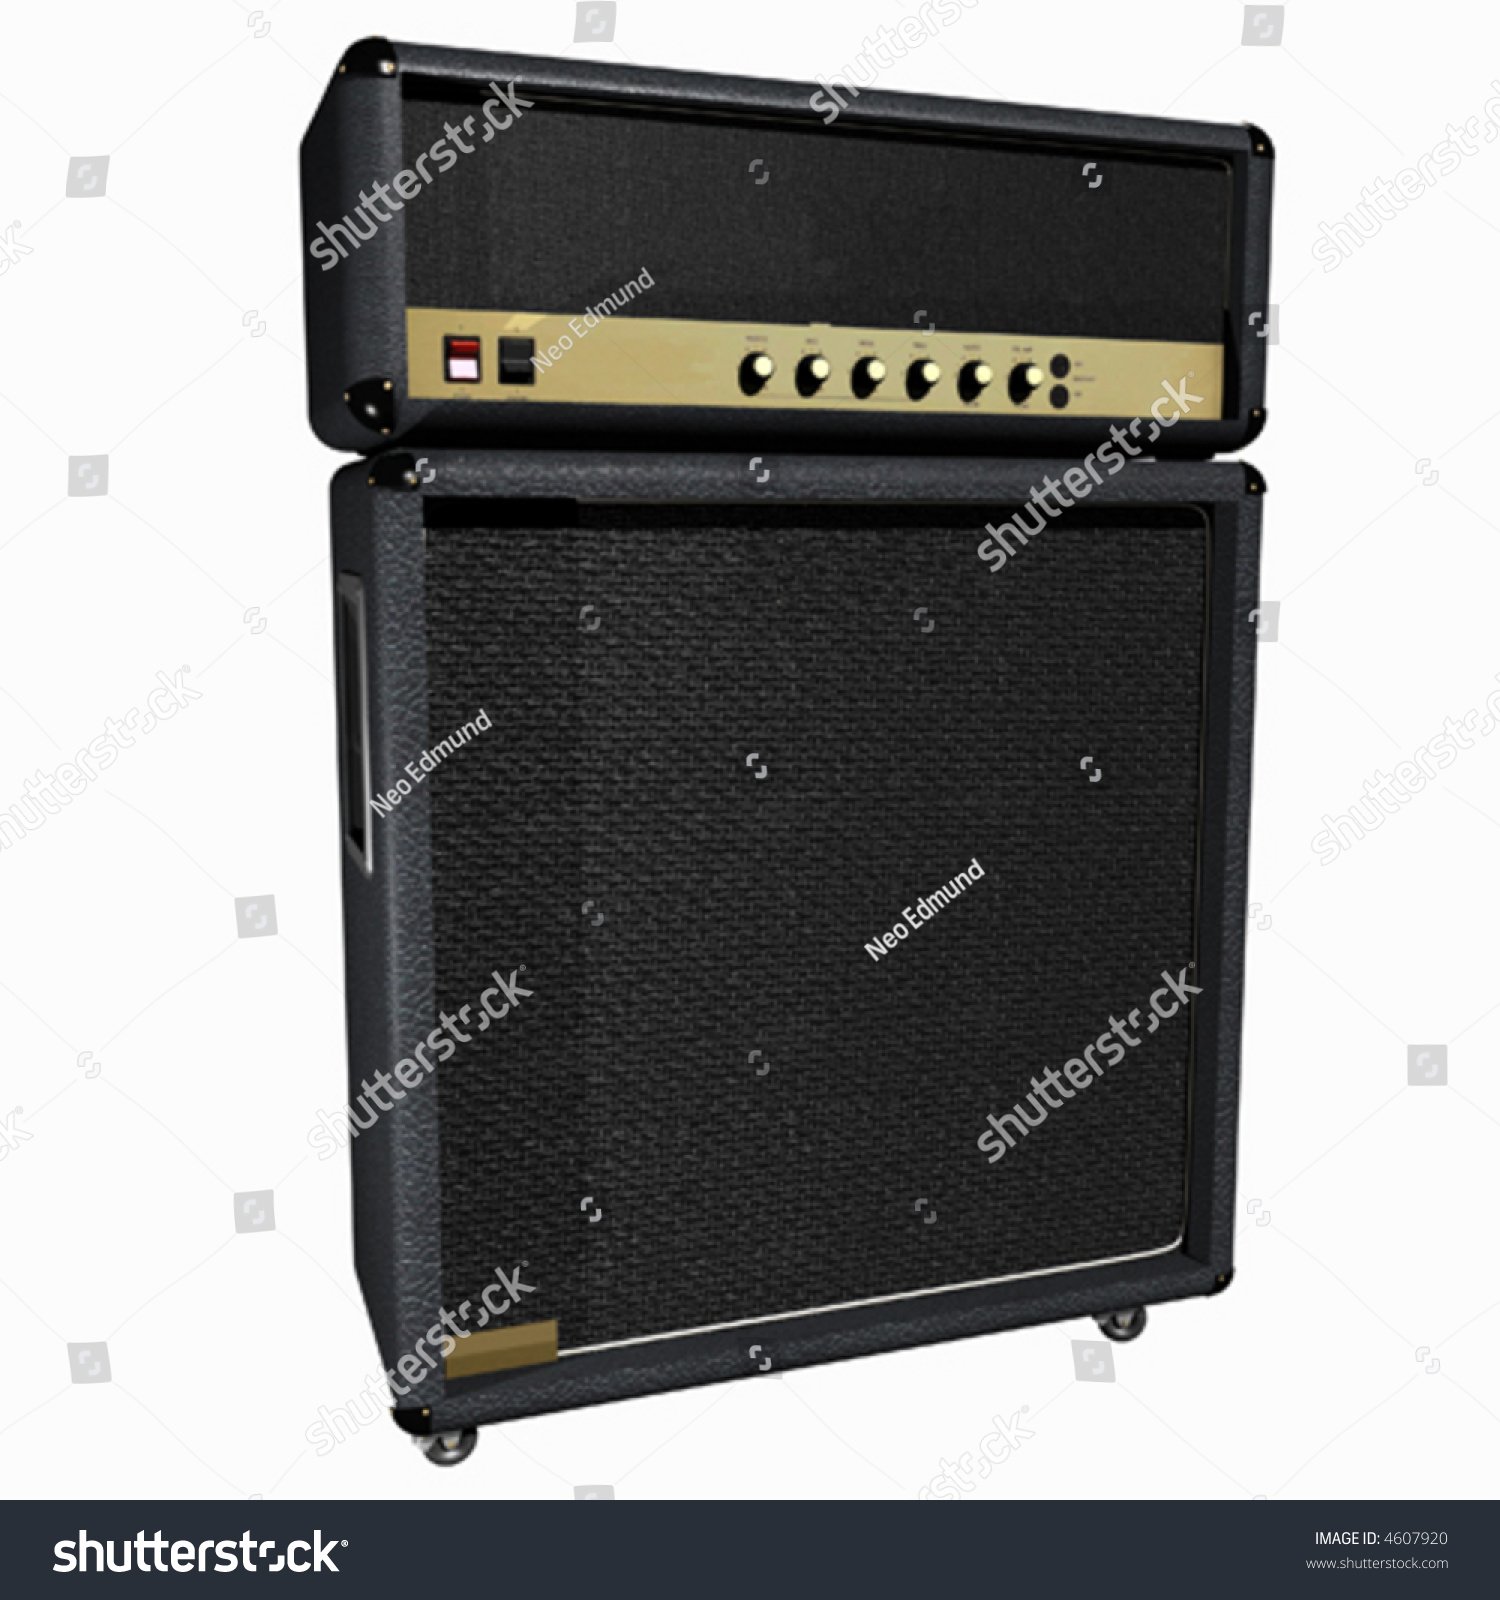 Images Stock Photos amp Vectors  Shutterstock